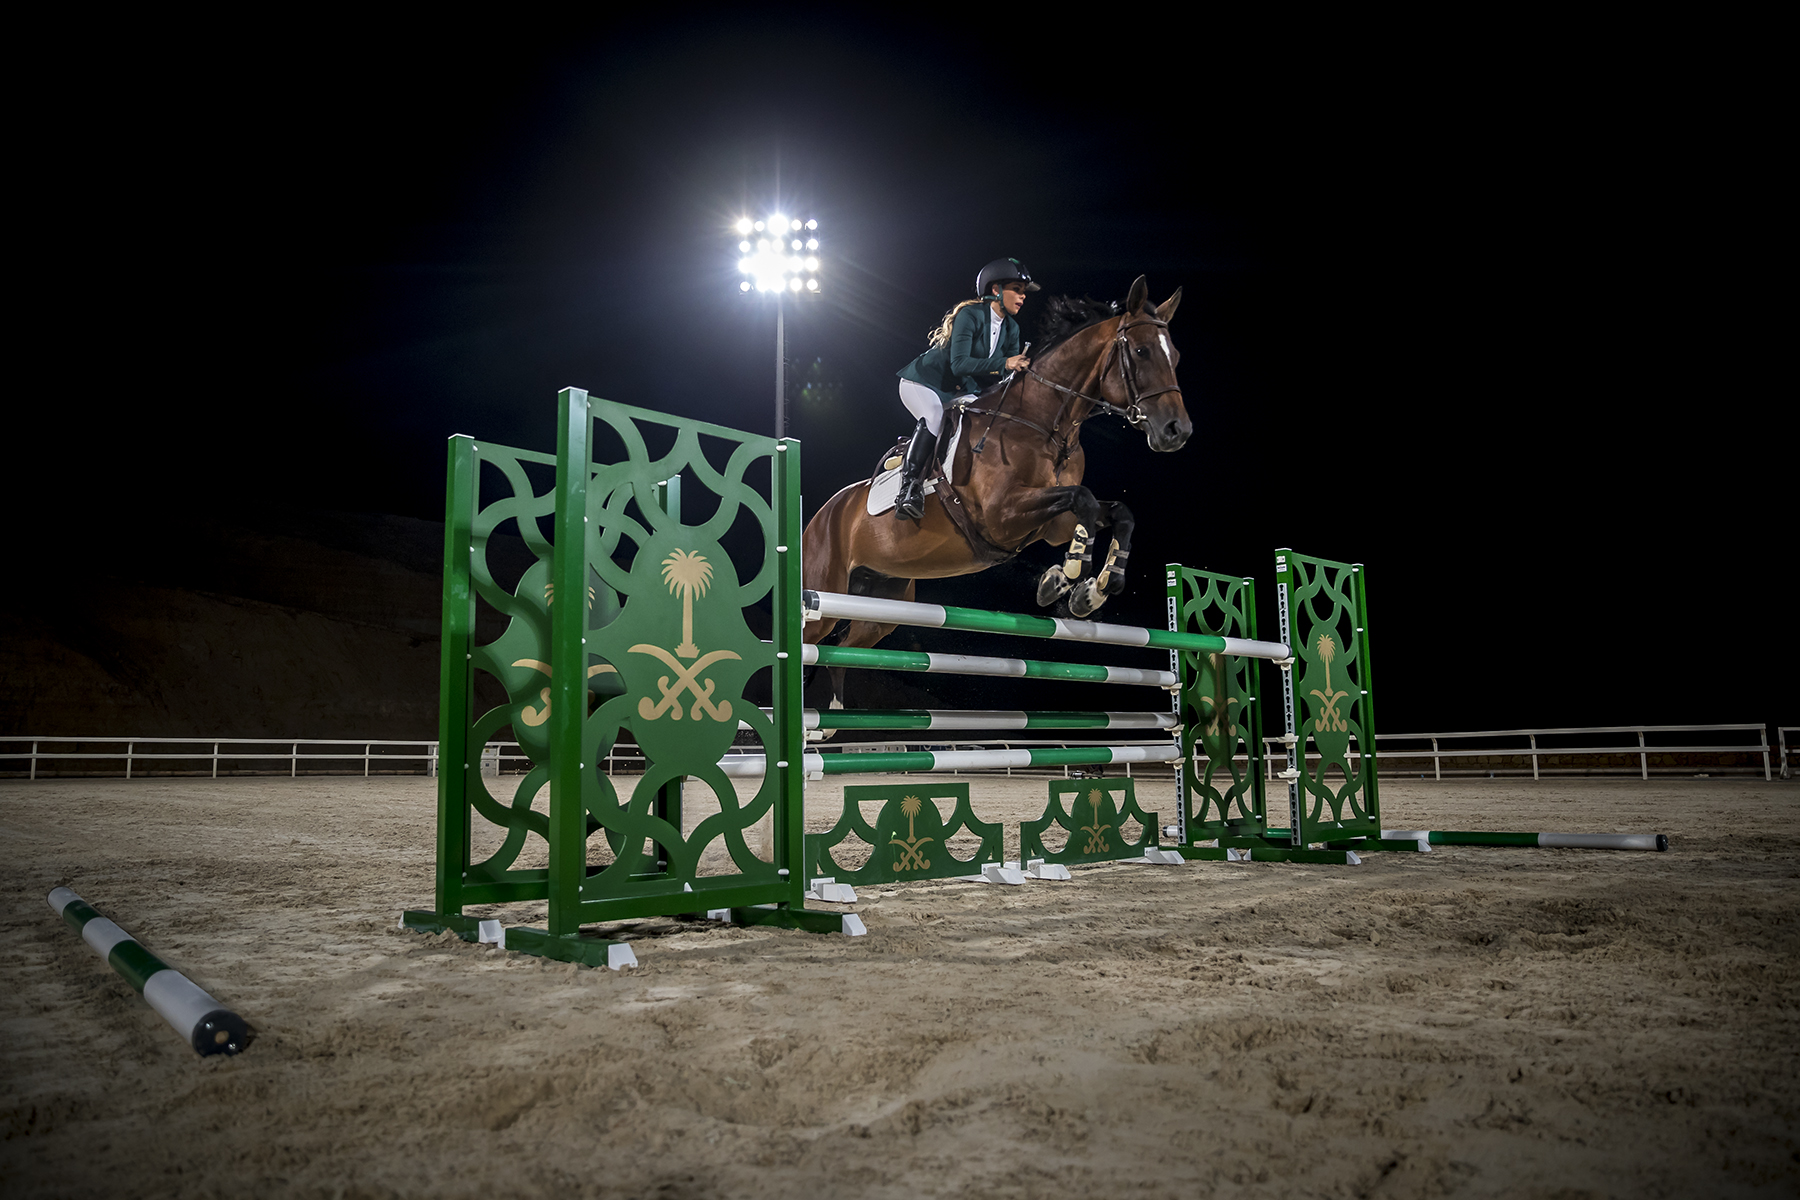 Time for Saudi women to shine in the saddle believes Saudi's first female Olympic rider Dalma Malhas